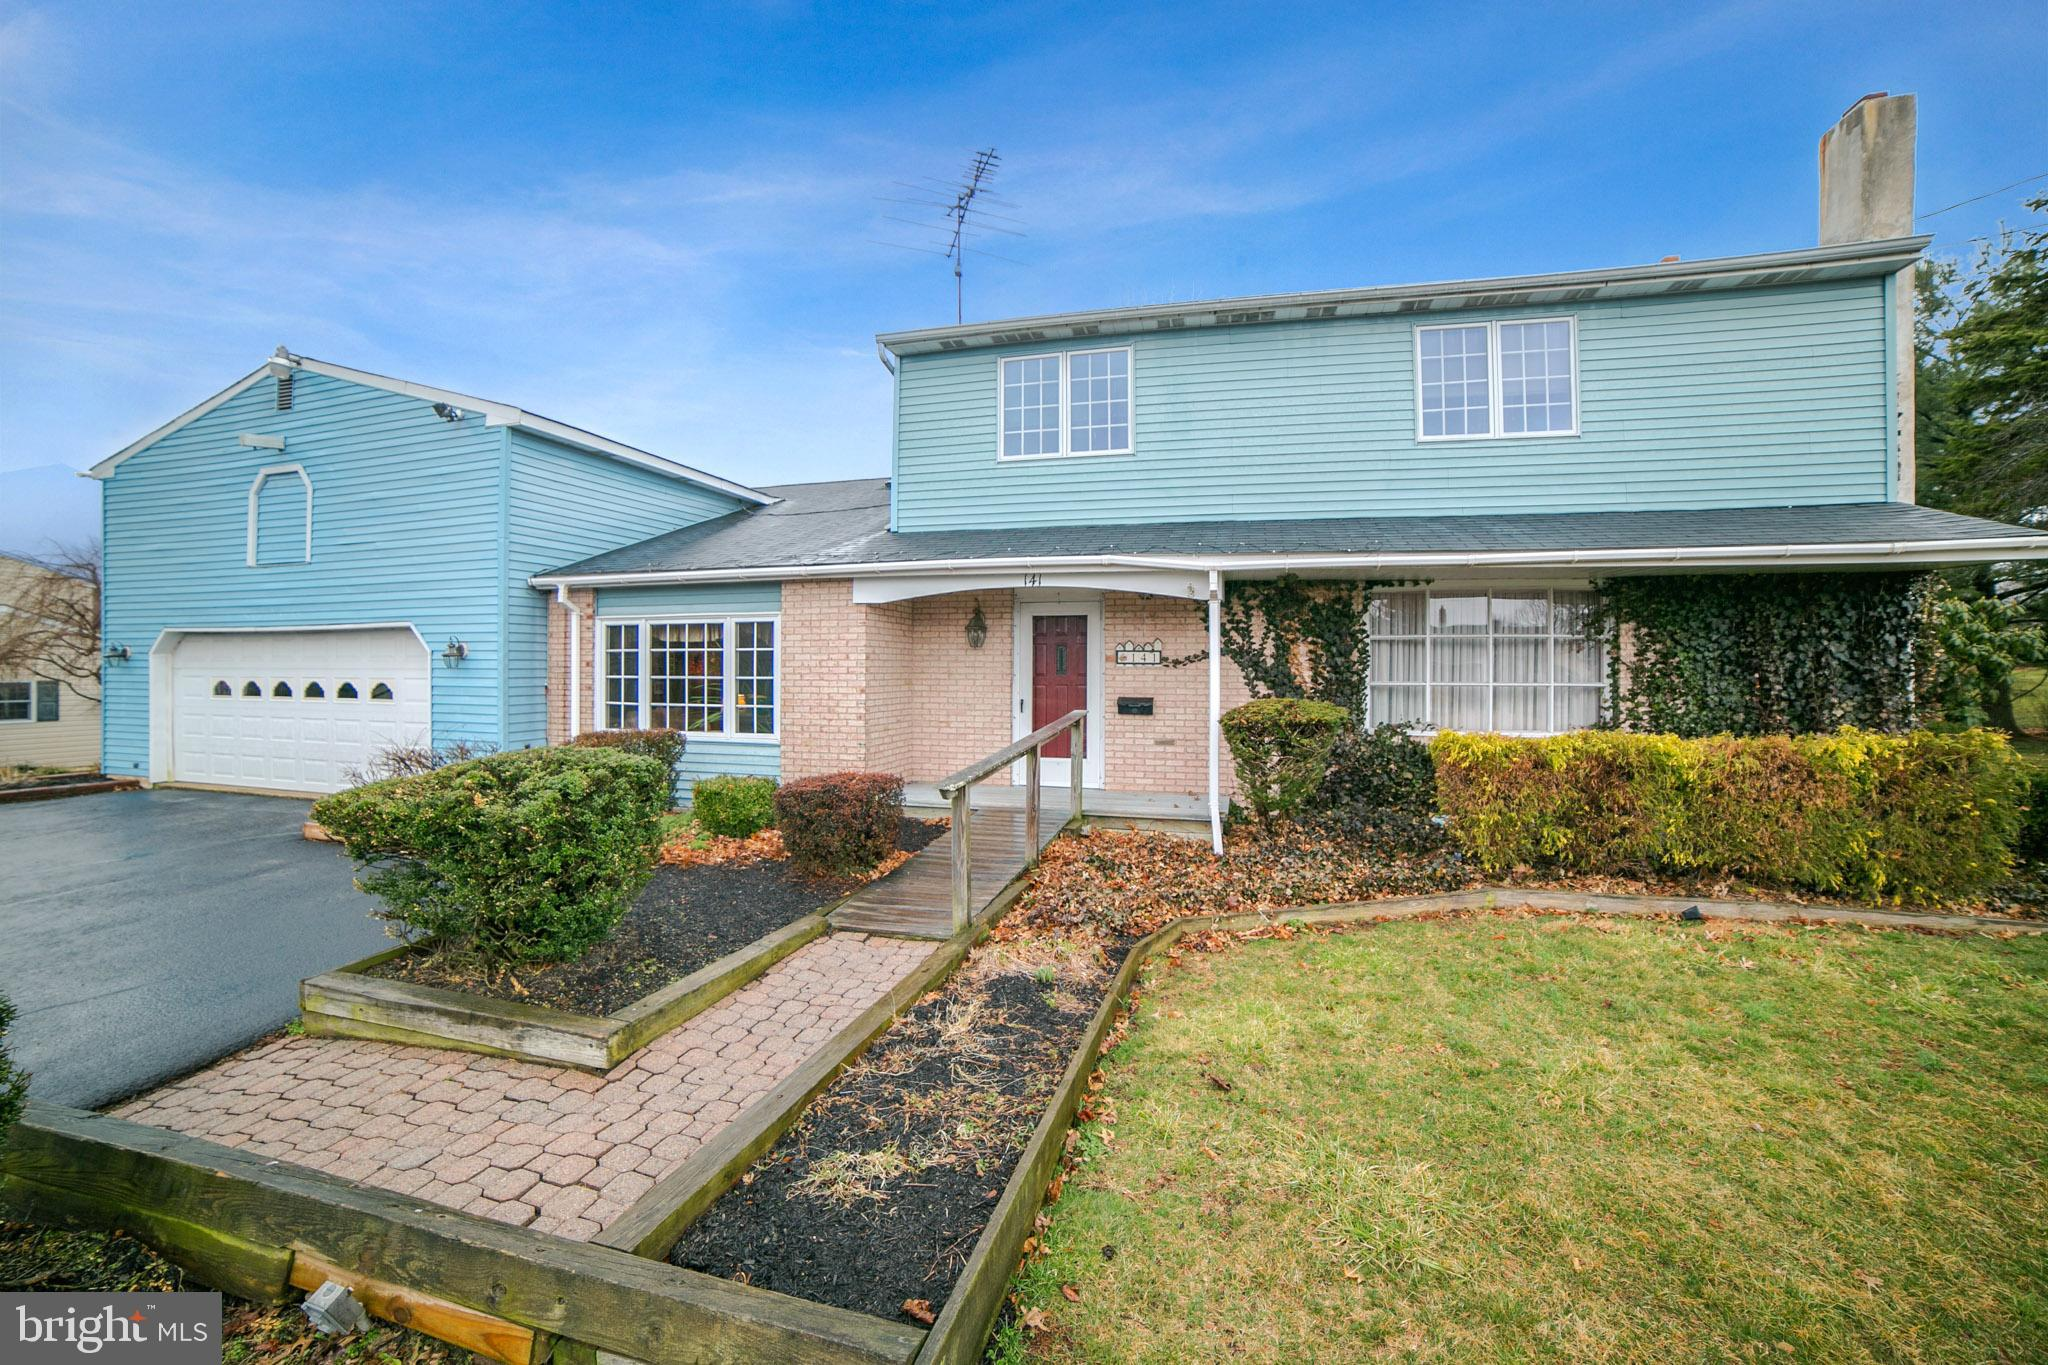 141 MAIN STREET, RED HILL, PA 18076